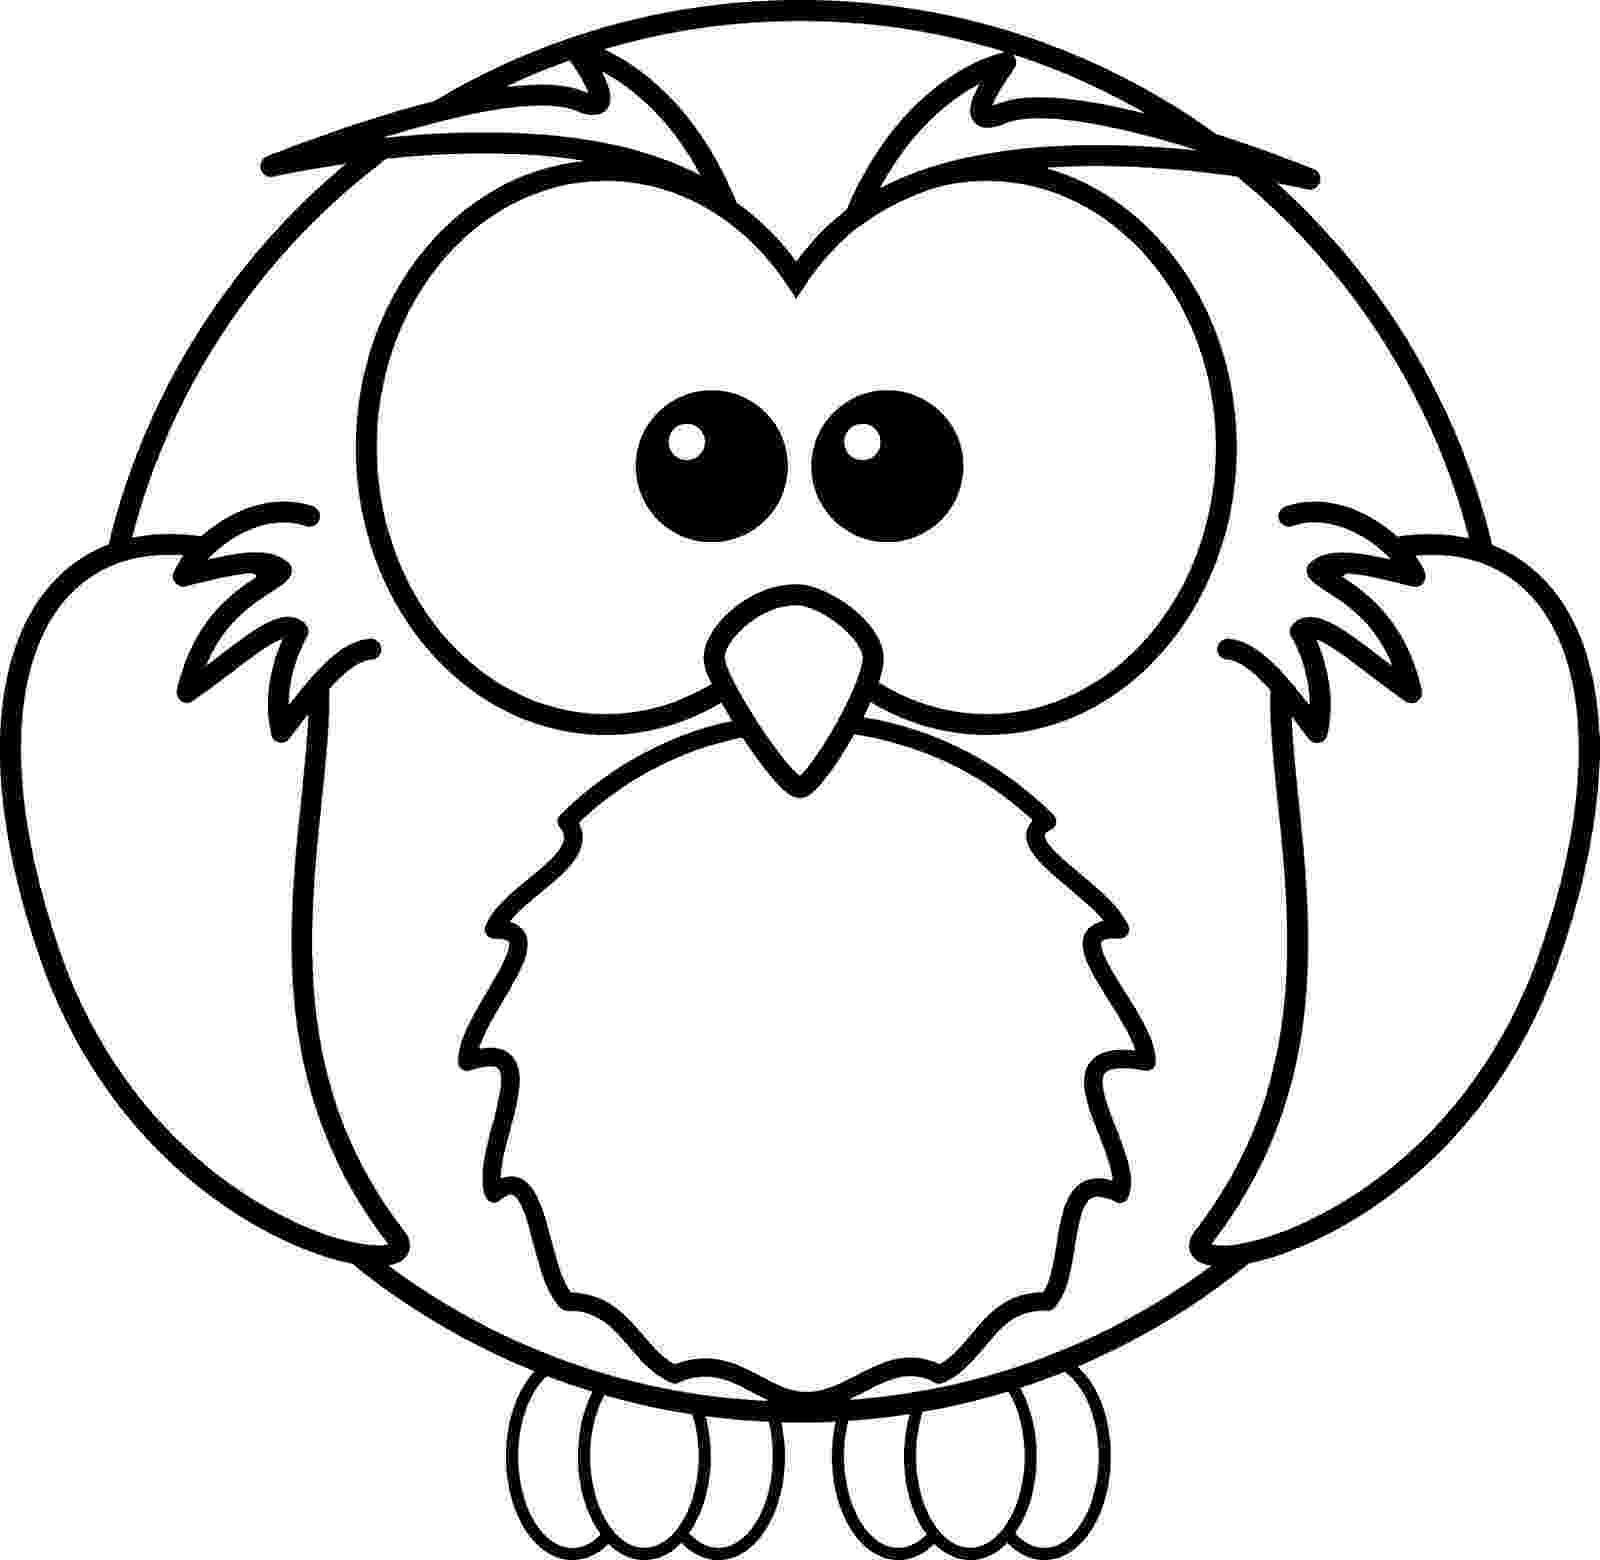 printable owls baby owls coloring sheet to print printable owls